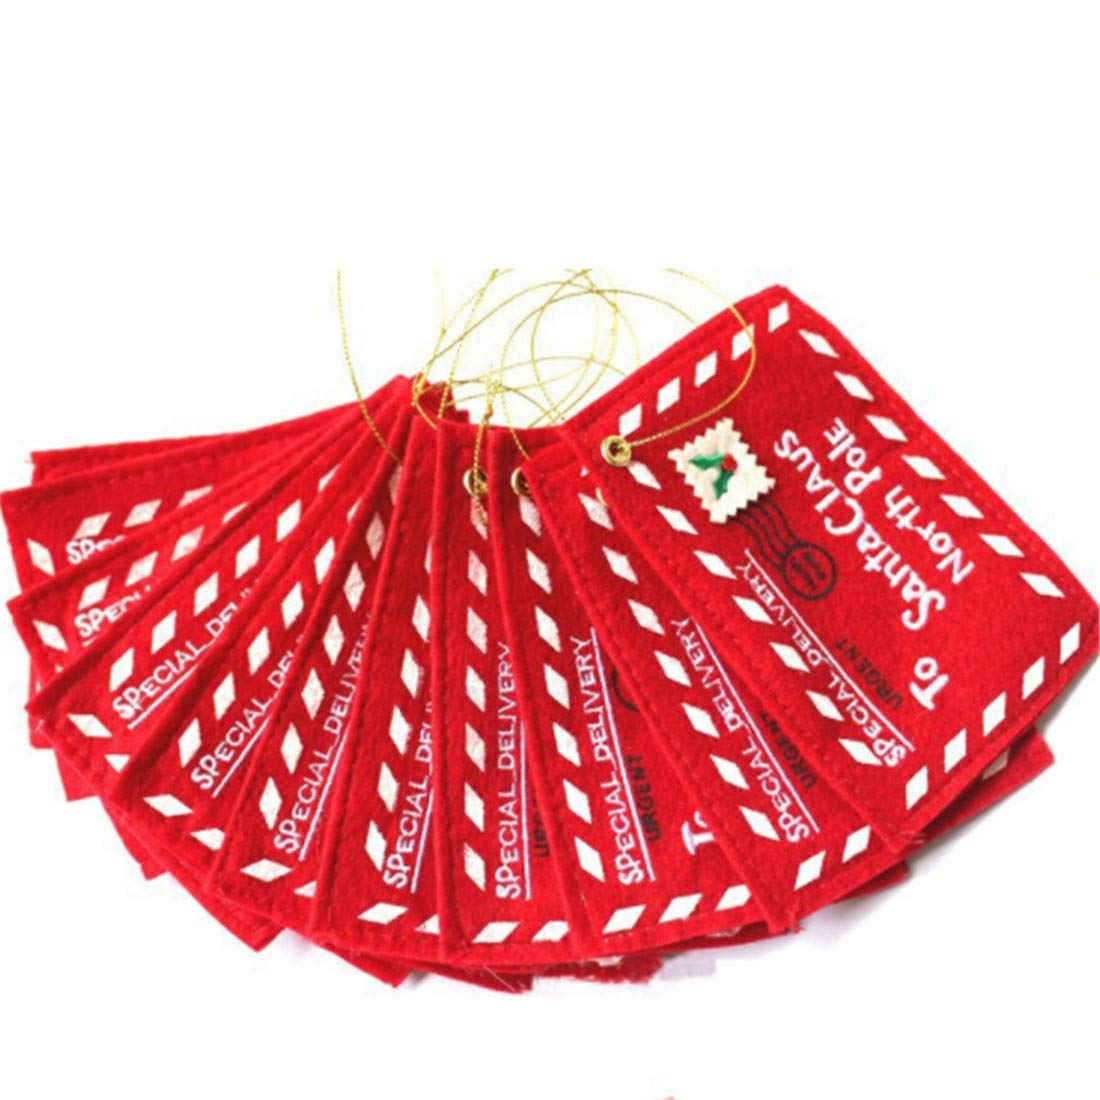 VWH Christmas Envelope Candy Gift Bag Tree Ornament Pendant Accessories Home Party Decor (red)